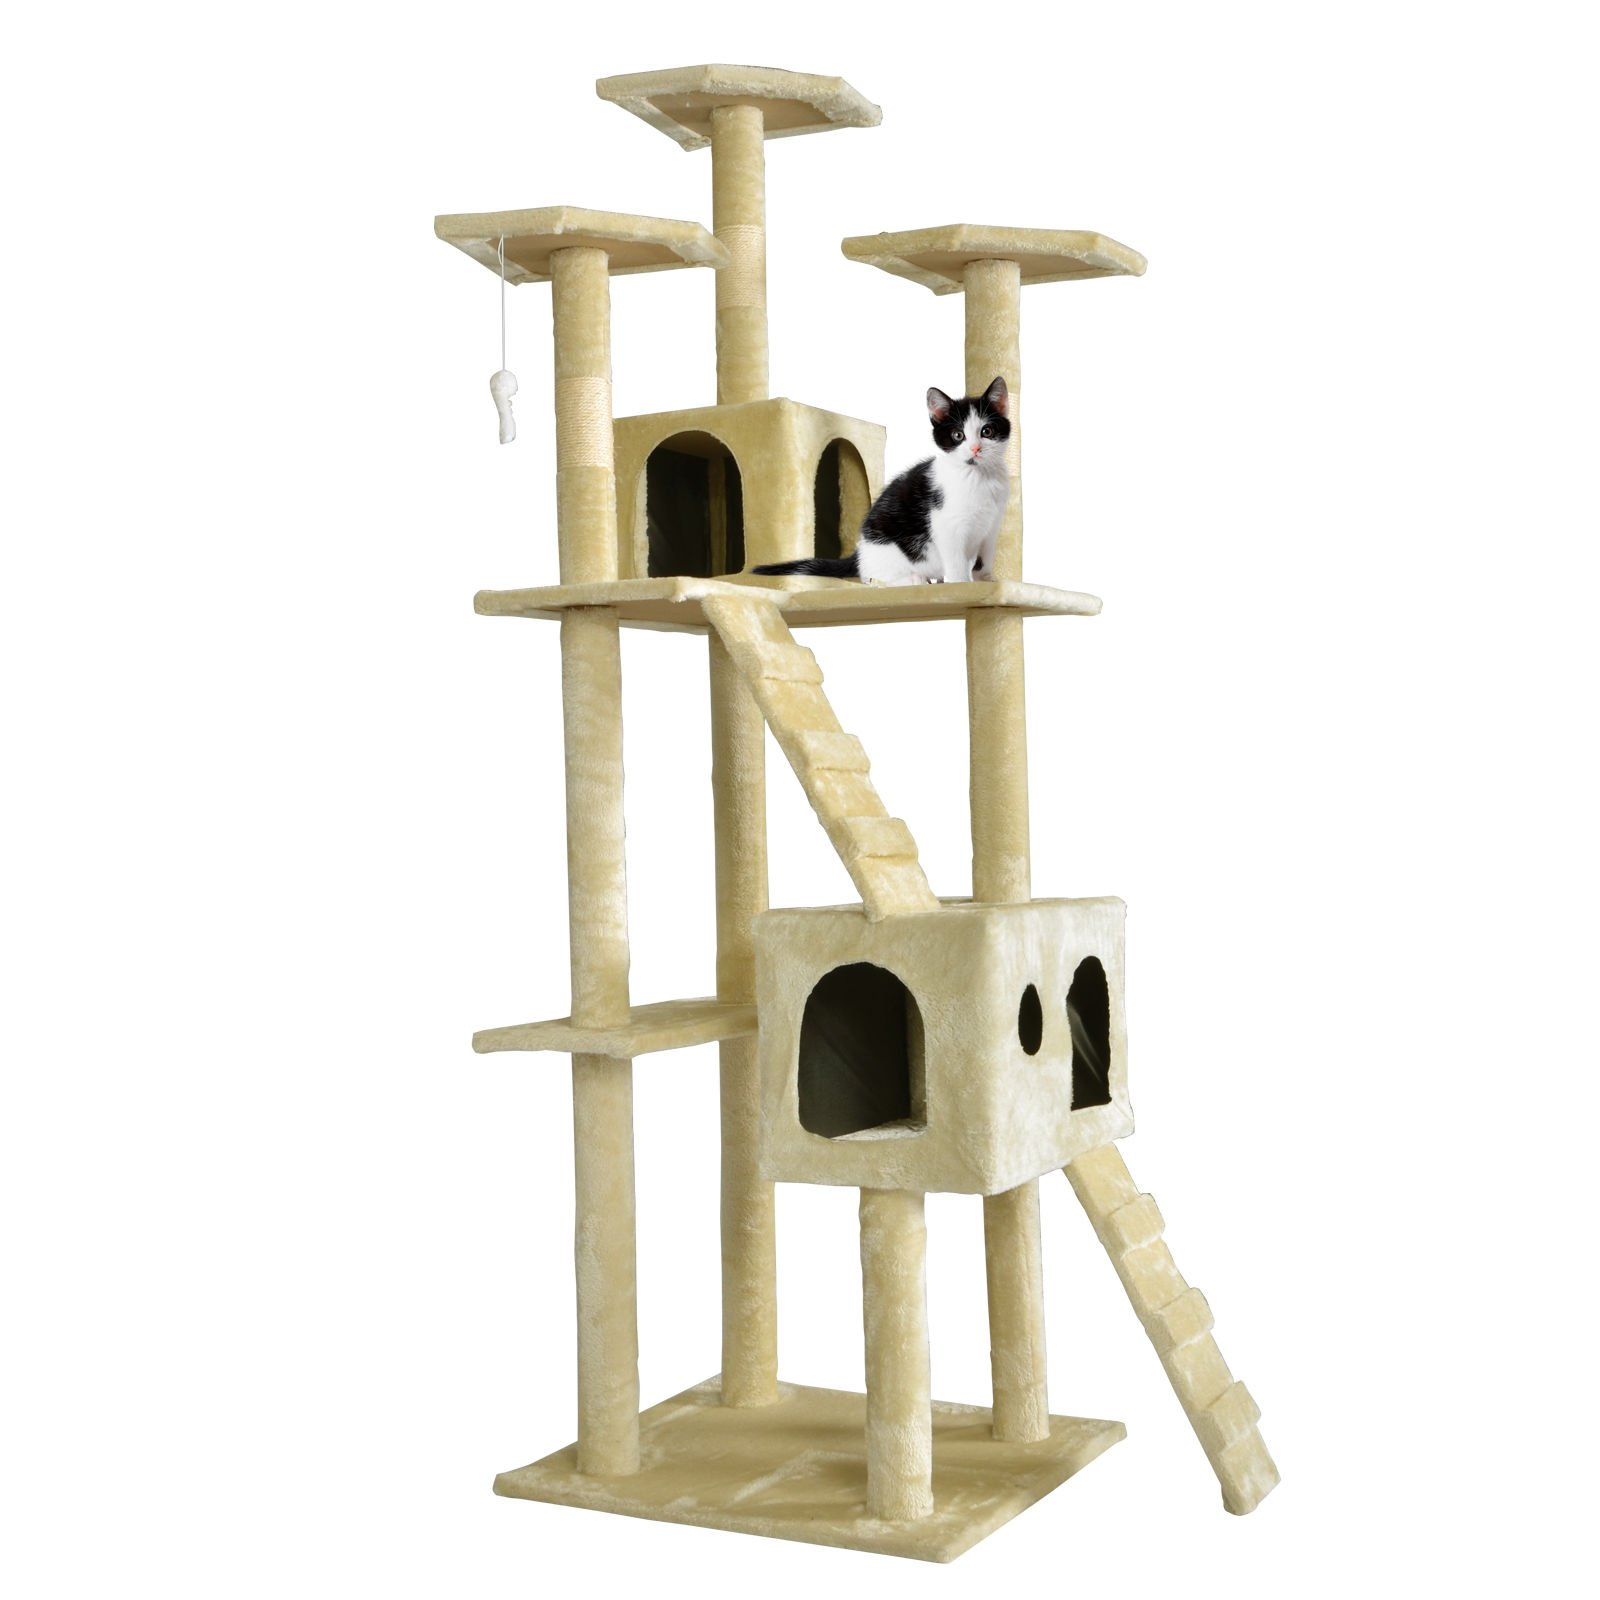 73'' Cat Tree Scratcher Play House Condo Furniture Toy Bed Post Pet House T07 (Condo Height: 73'', Beige)